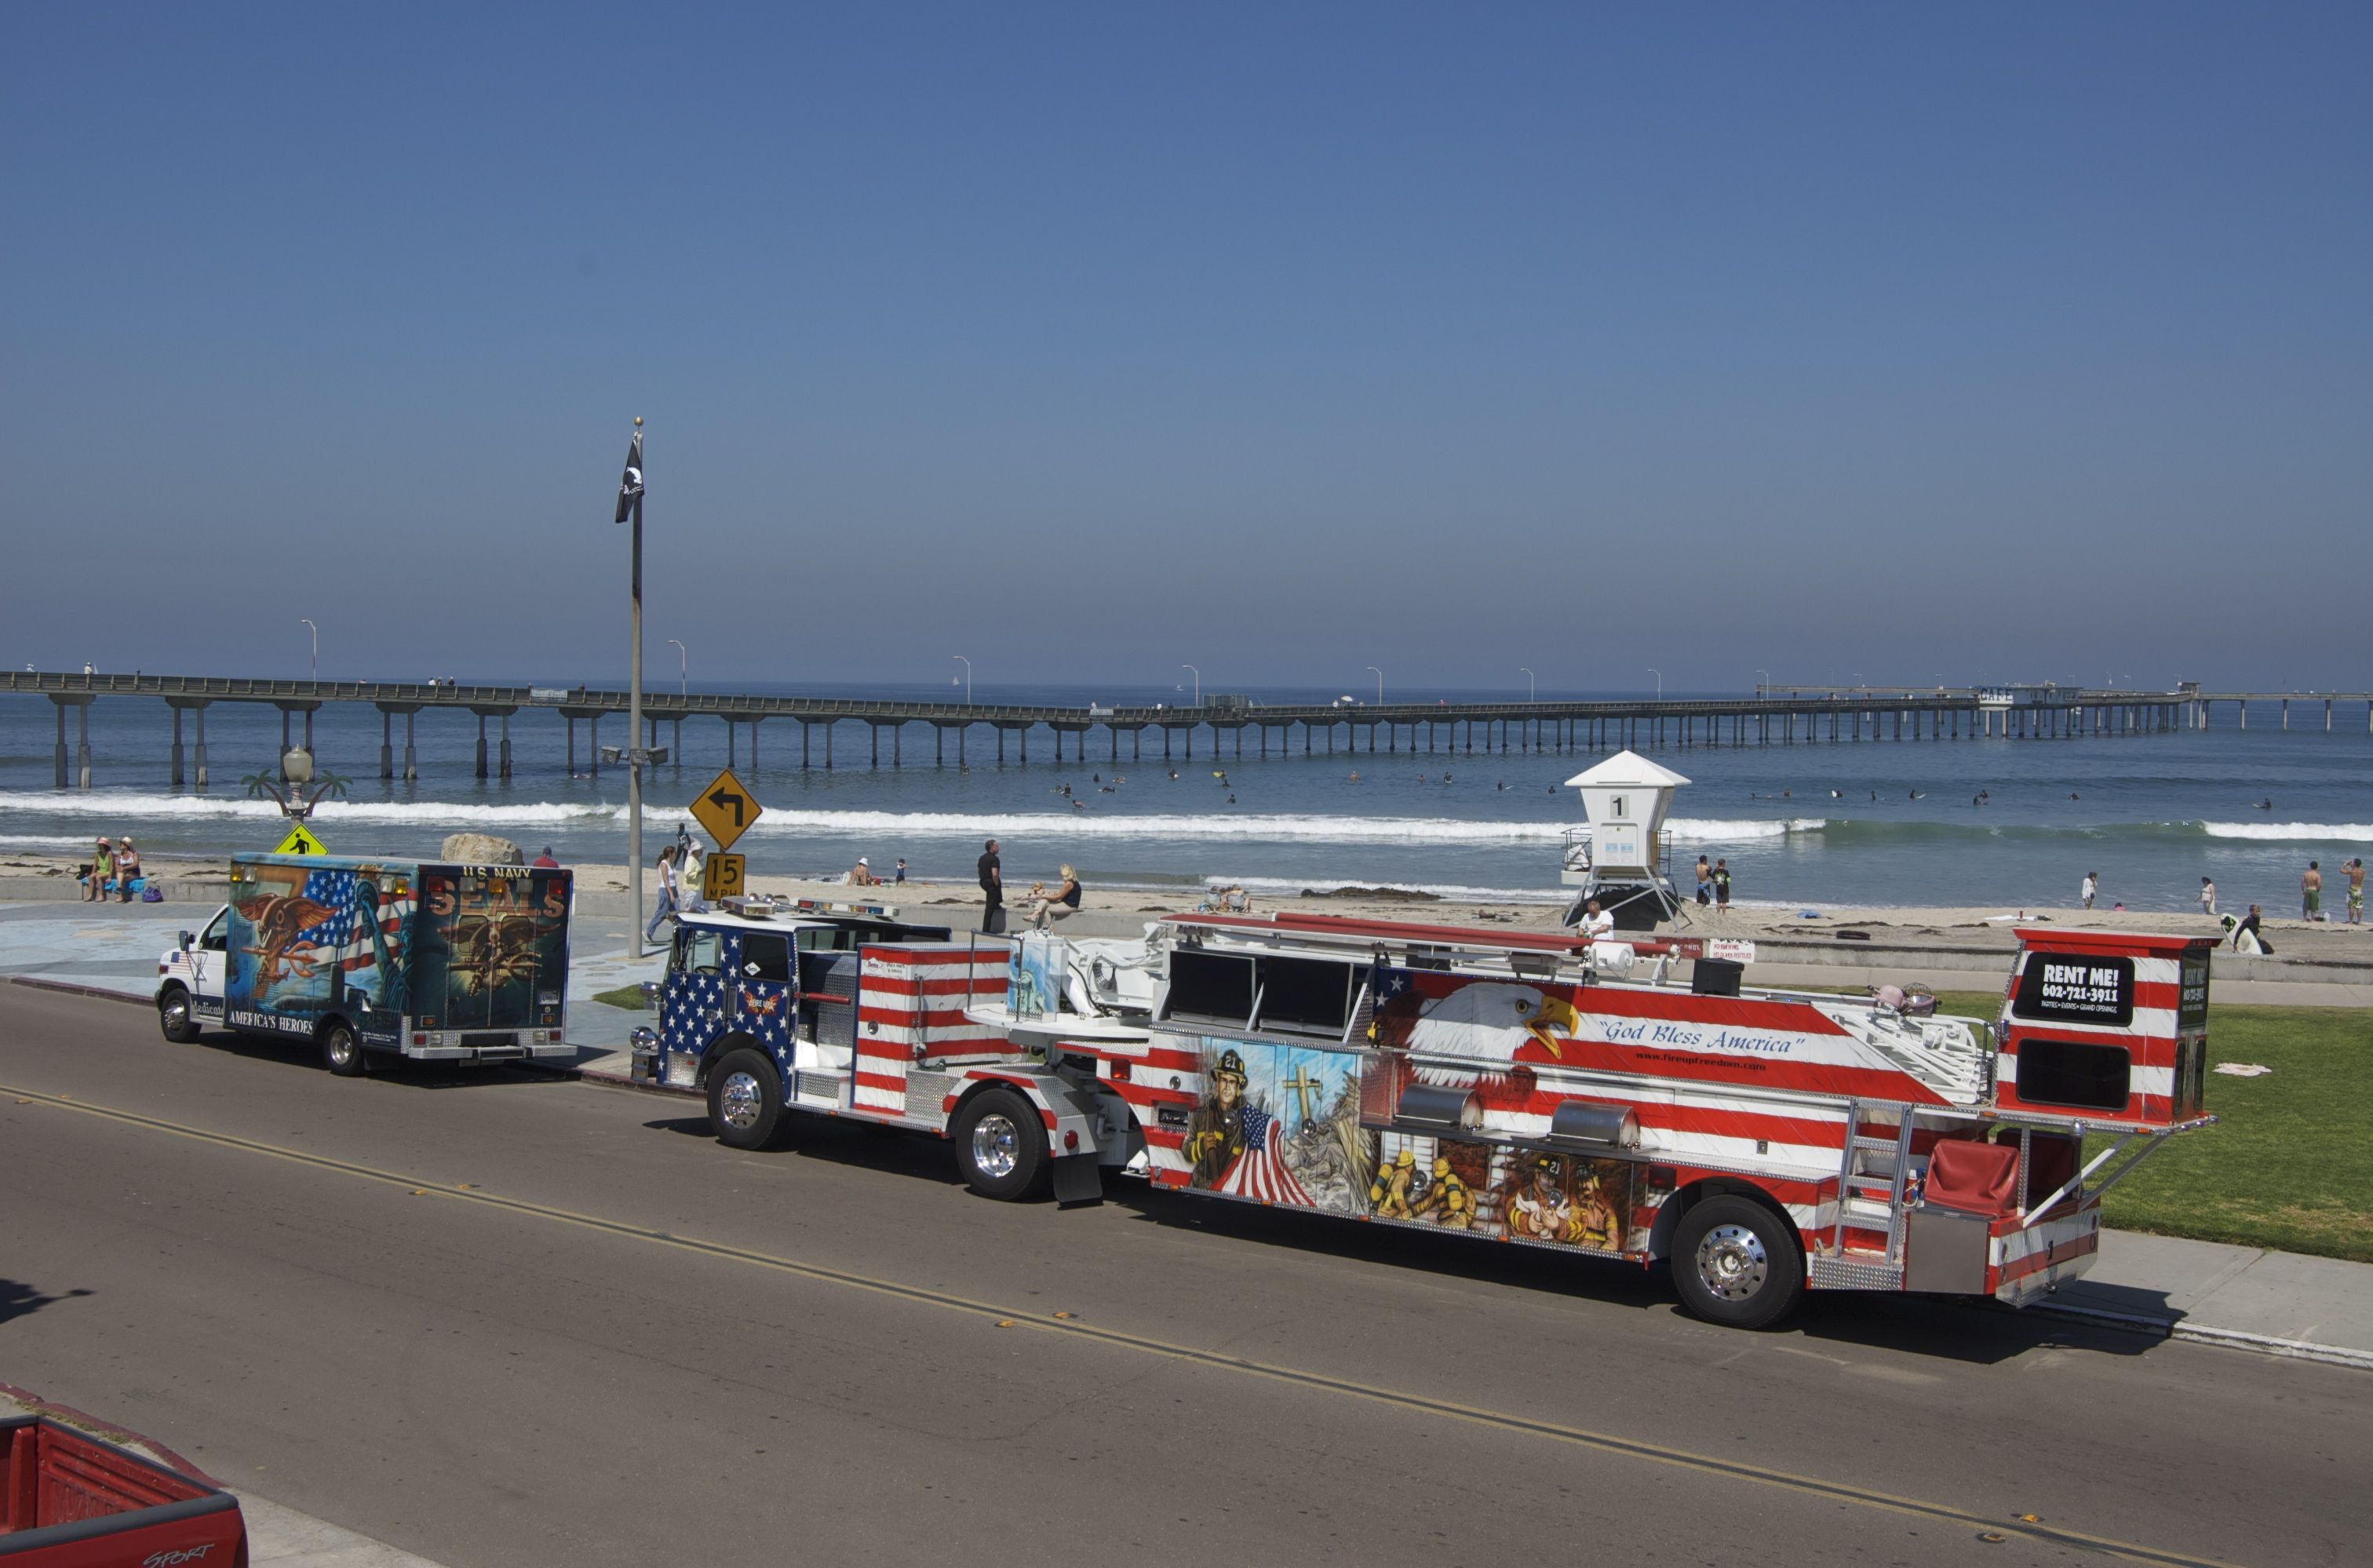 Freedom Fire Truck America S Freedom Engine For Events Rental Fire Trucks Fire Emt Fire Rescue